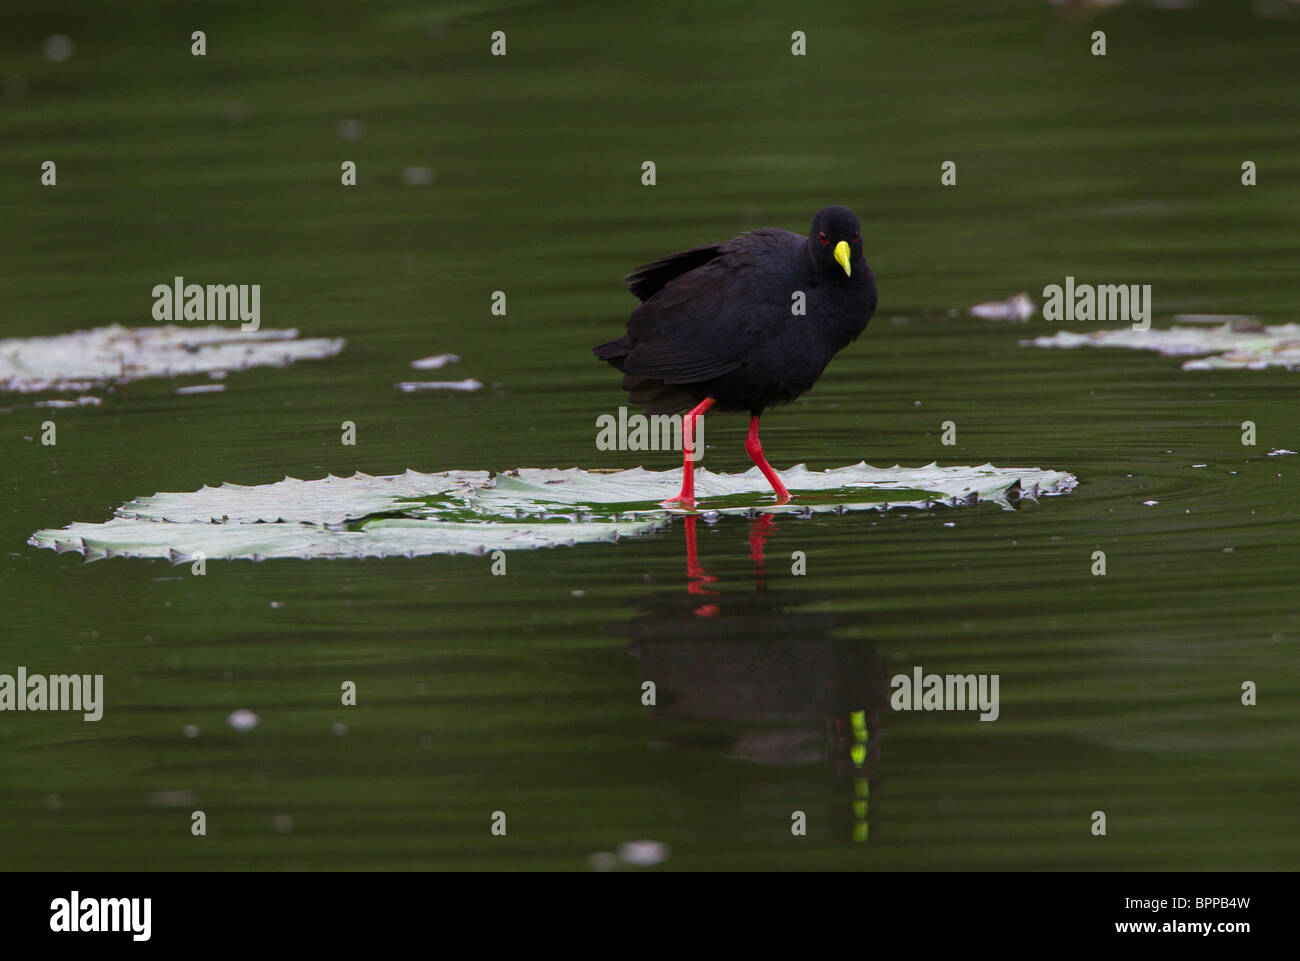 Black Crake on Lily Pad - Stock Image